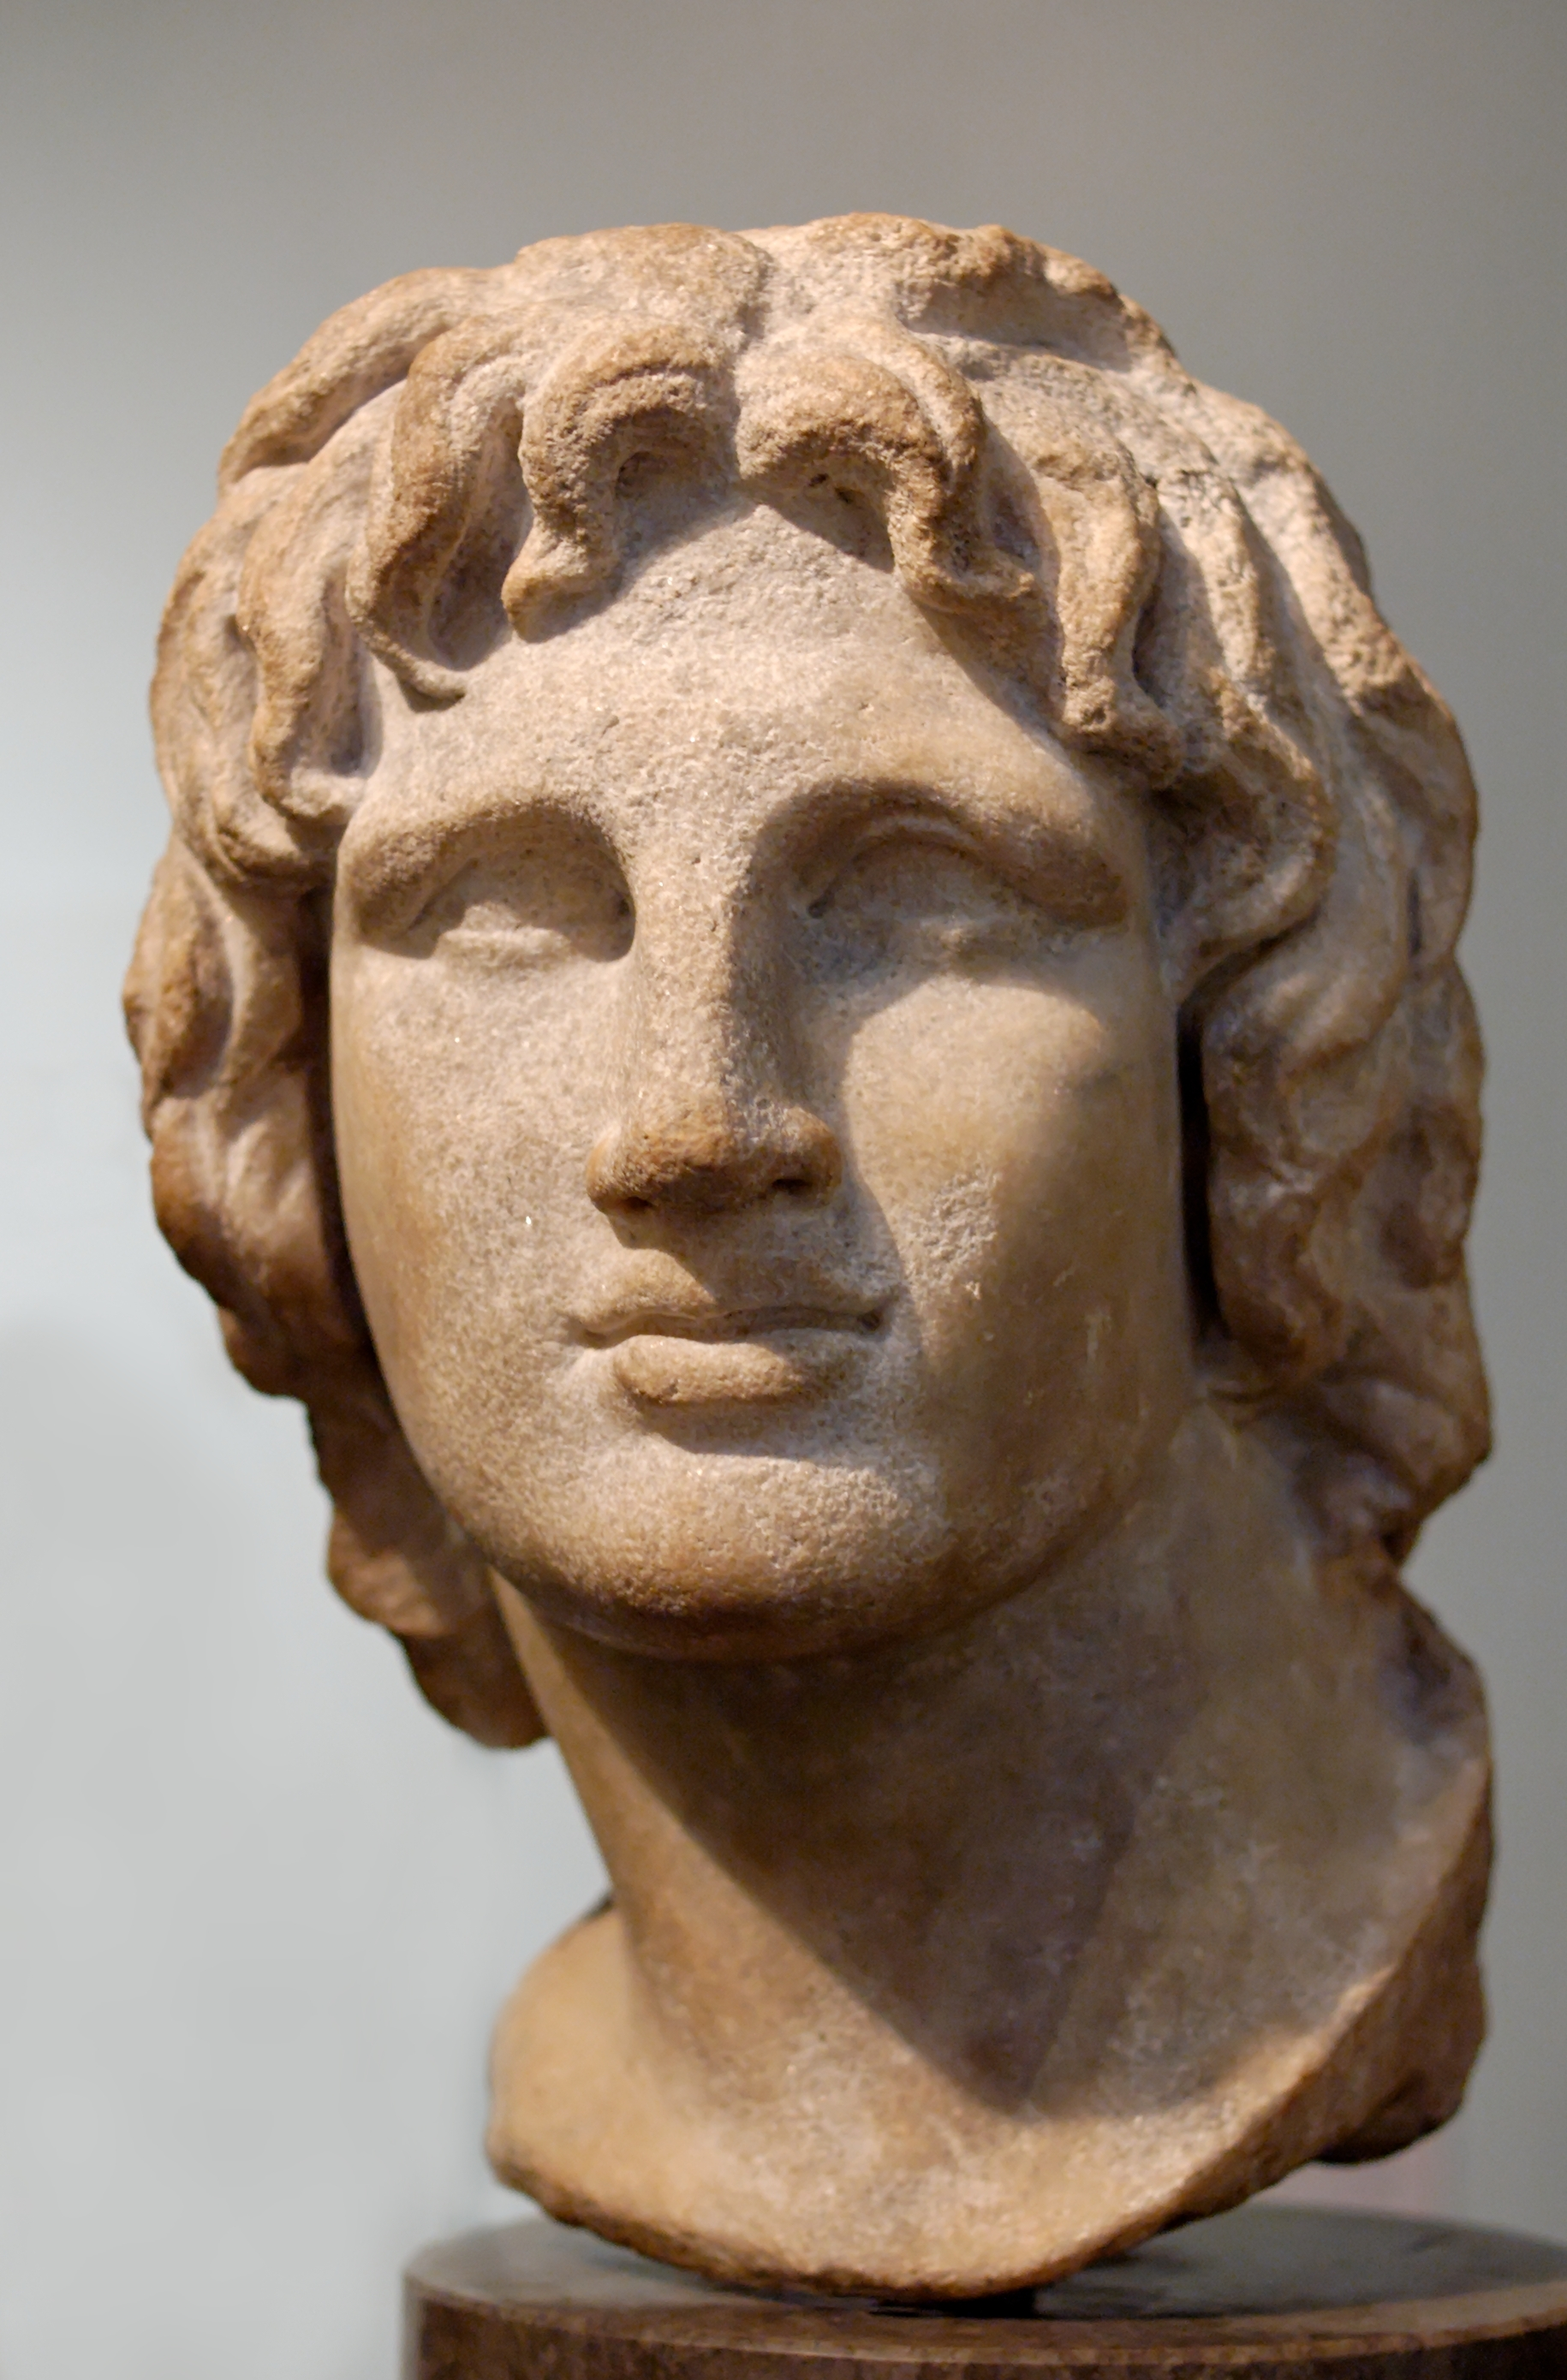 A young Alexander, dreaming of conquest. - Bust of Alexander the Great, Wikicommons.